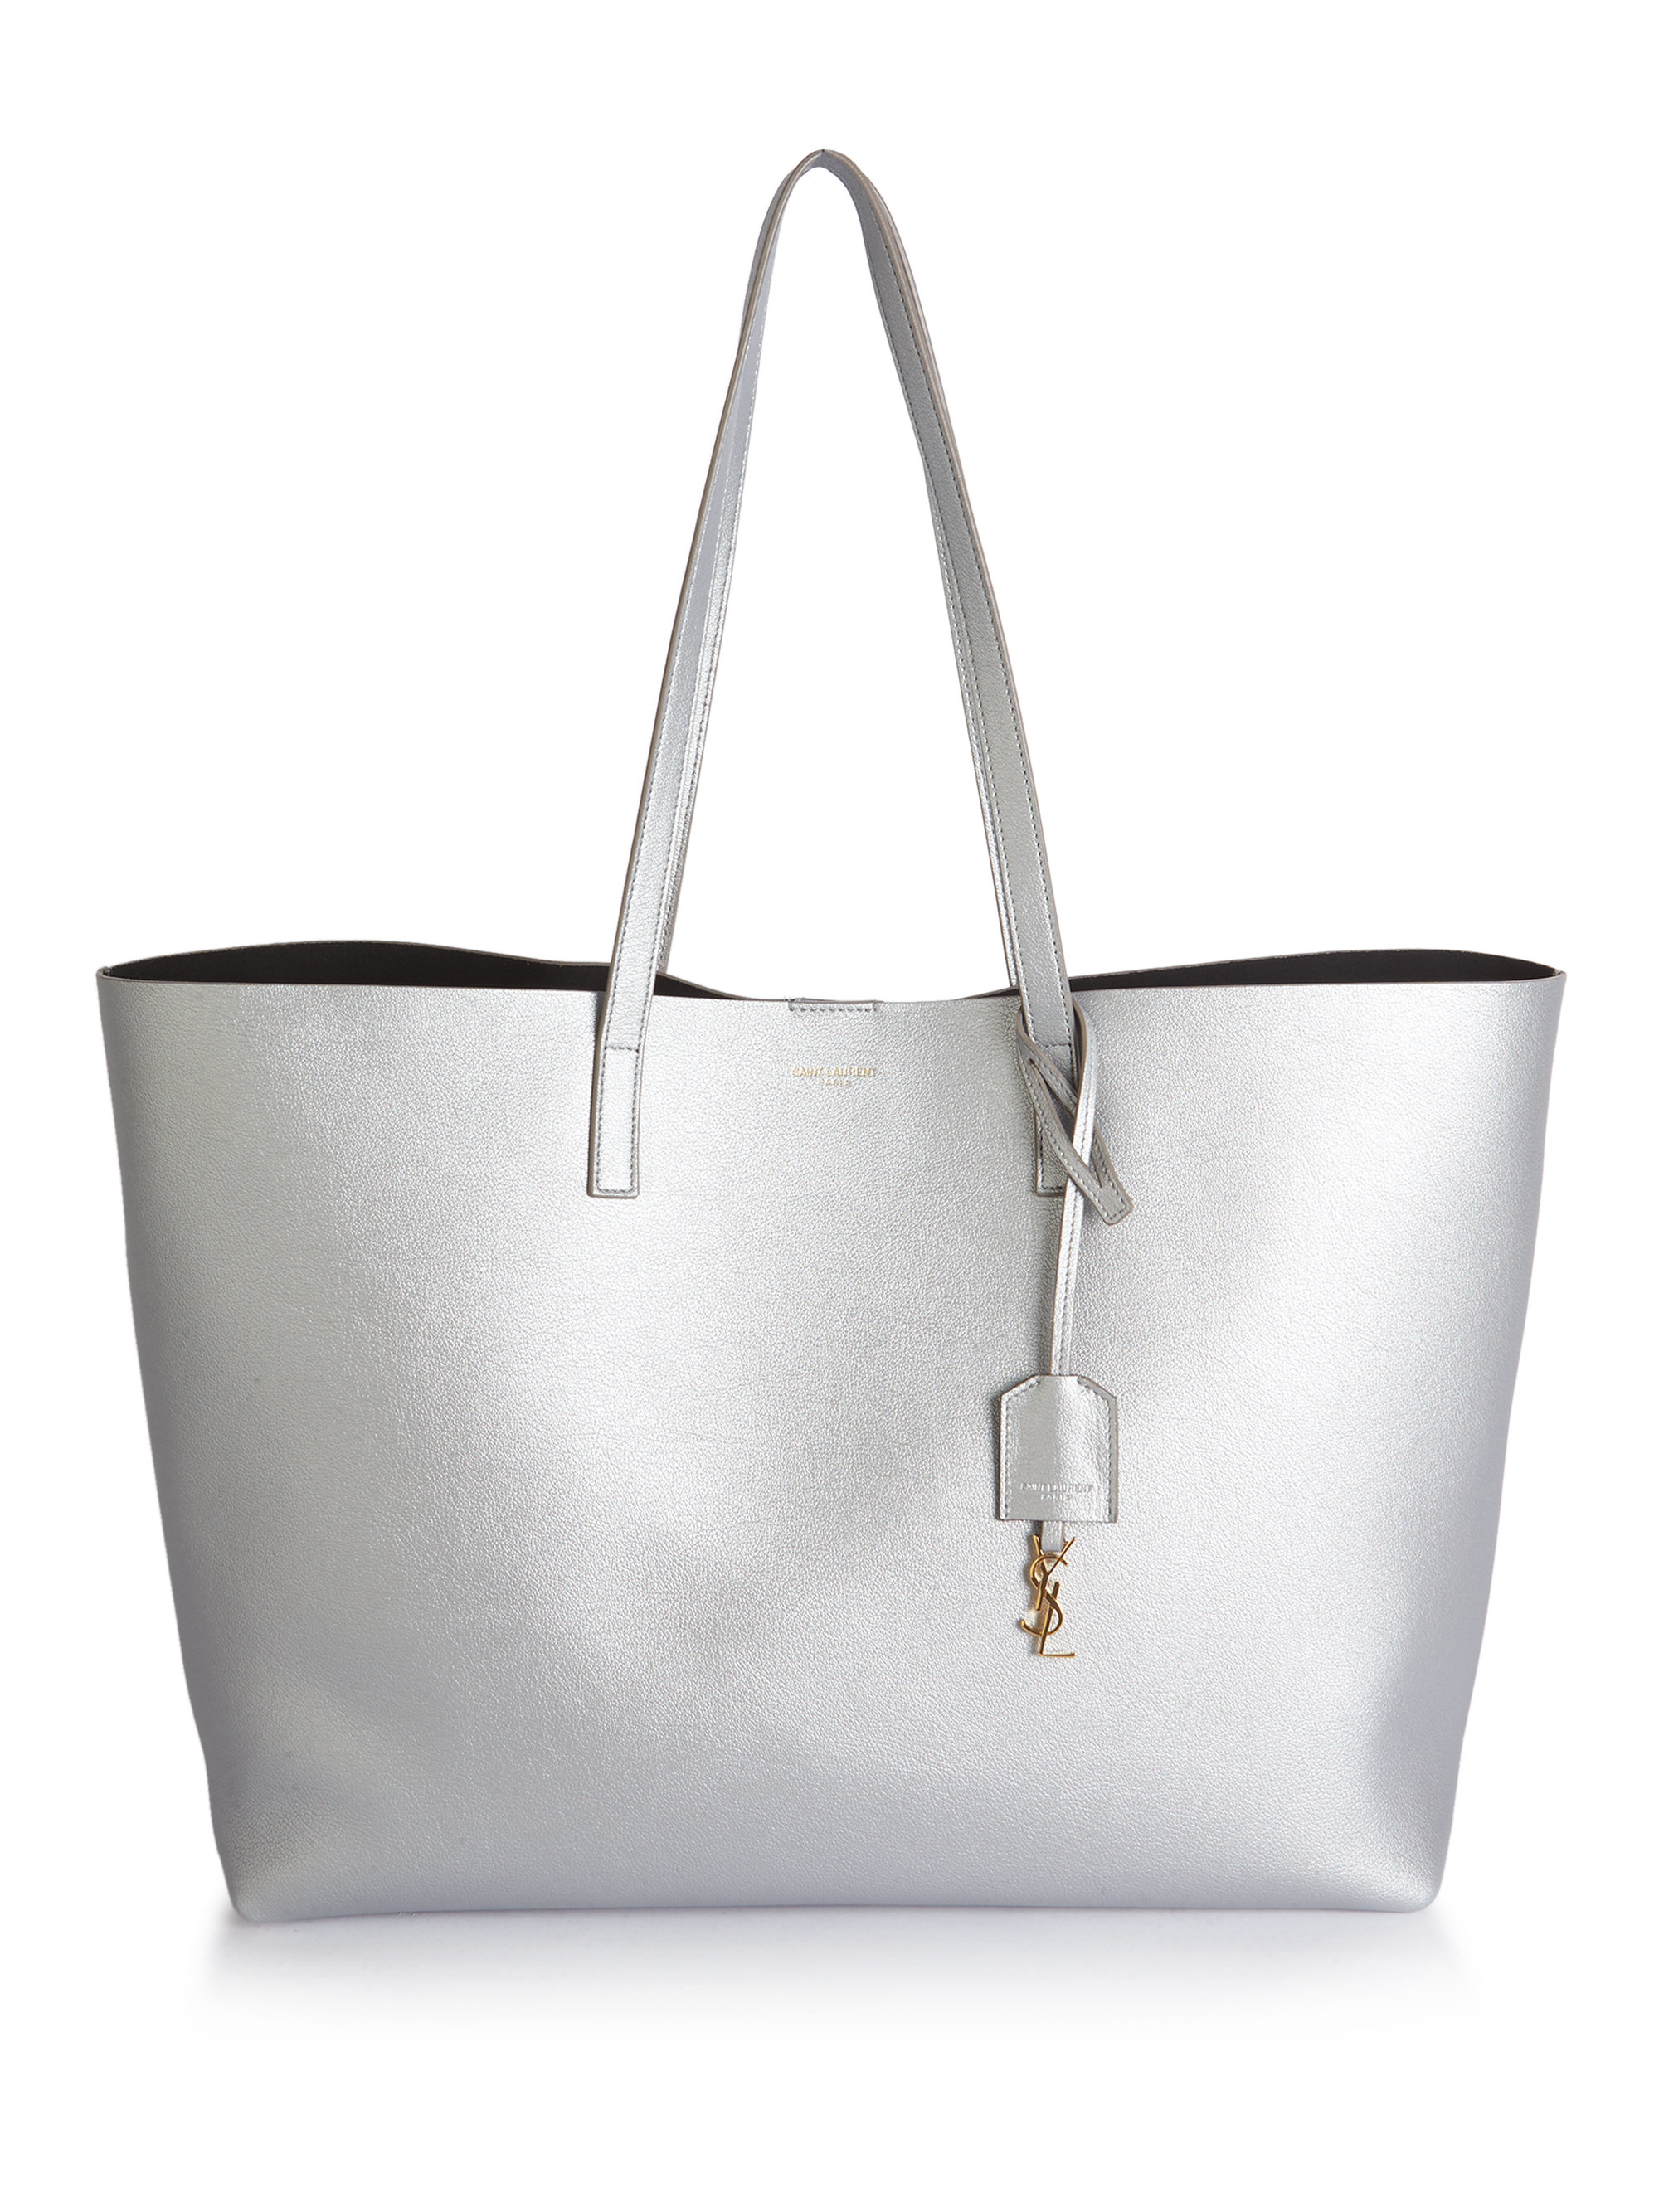 f05f1d2af44 Saint laurent Large Shopping Tote Smooth Leather in Silver | Lyst